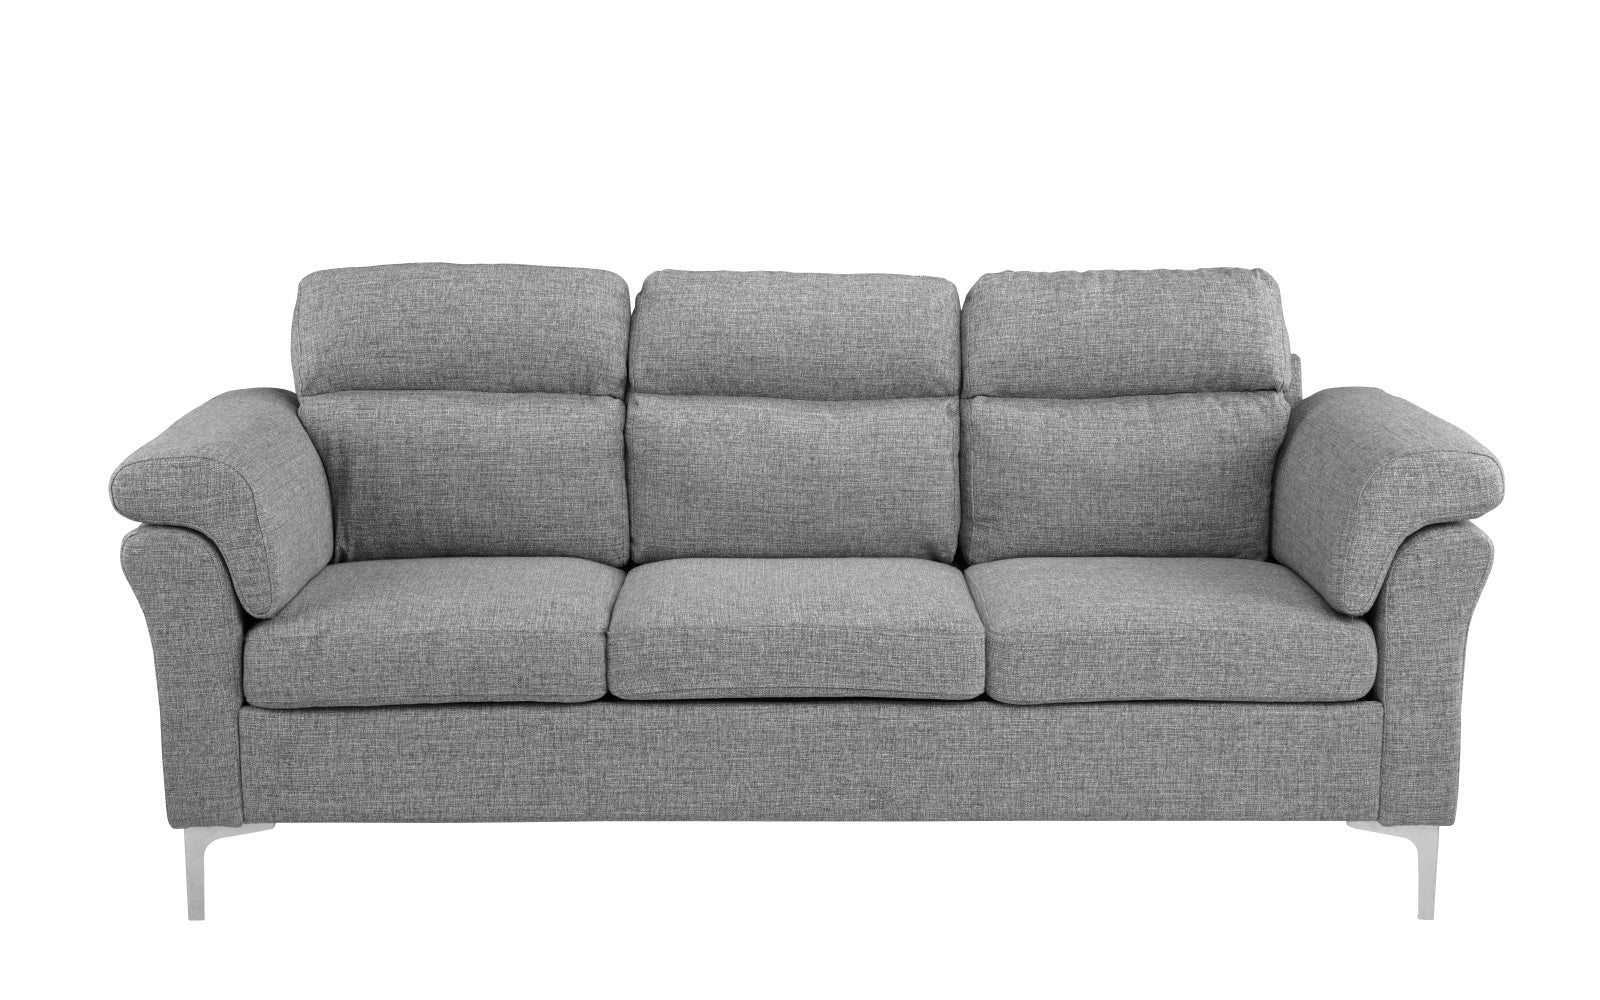 Linen Sofa Chrome Legs Image